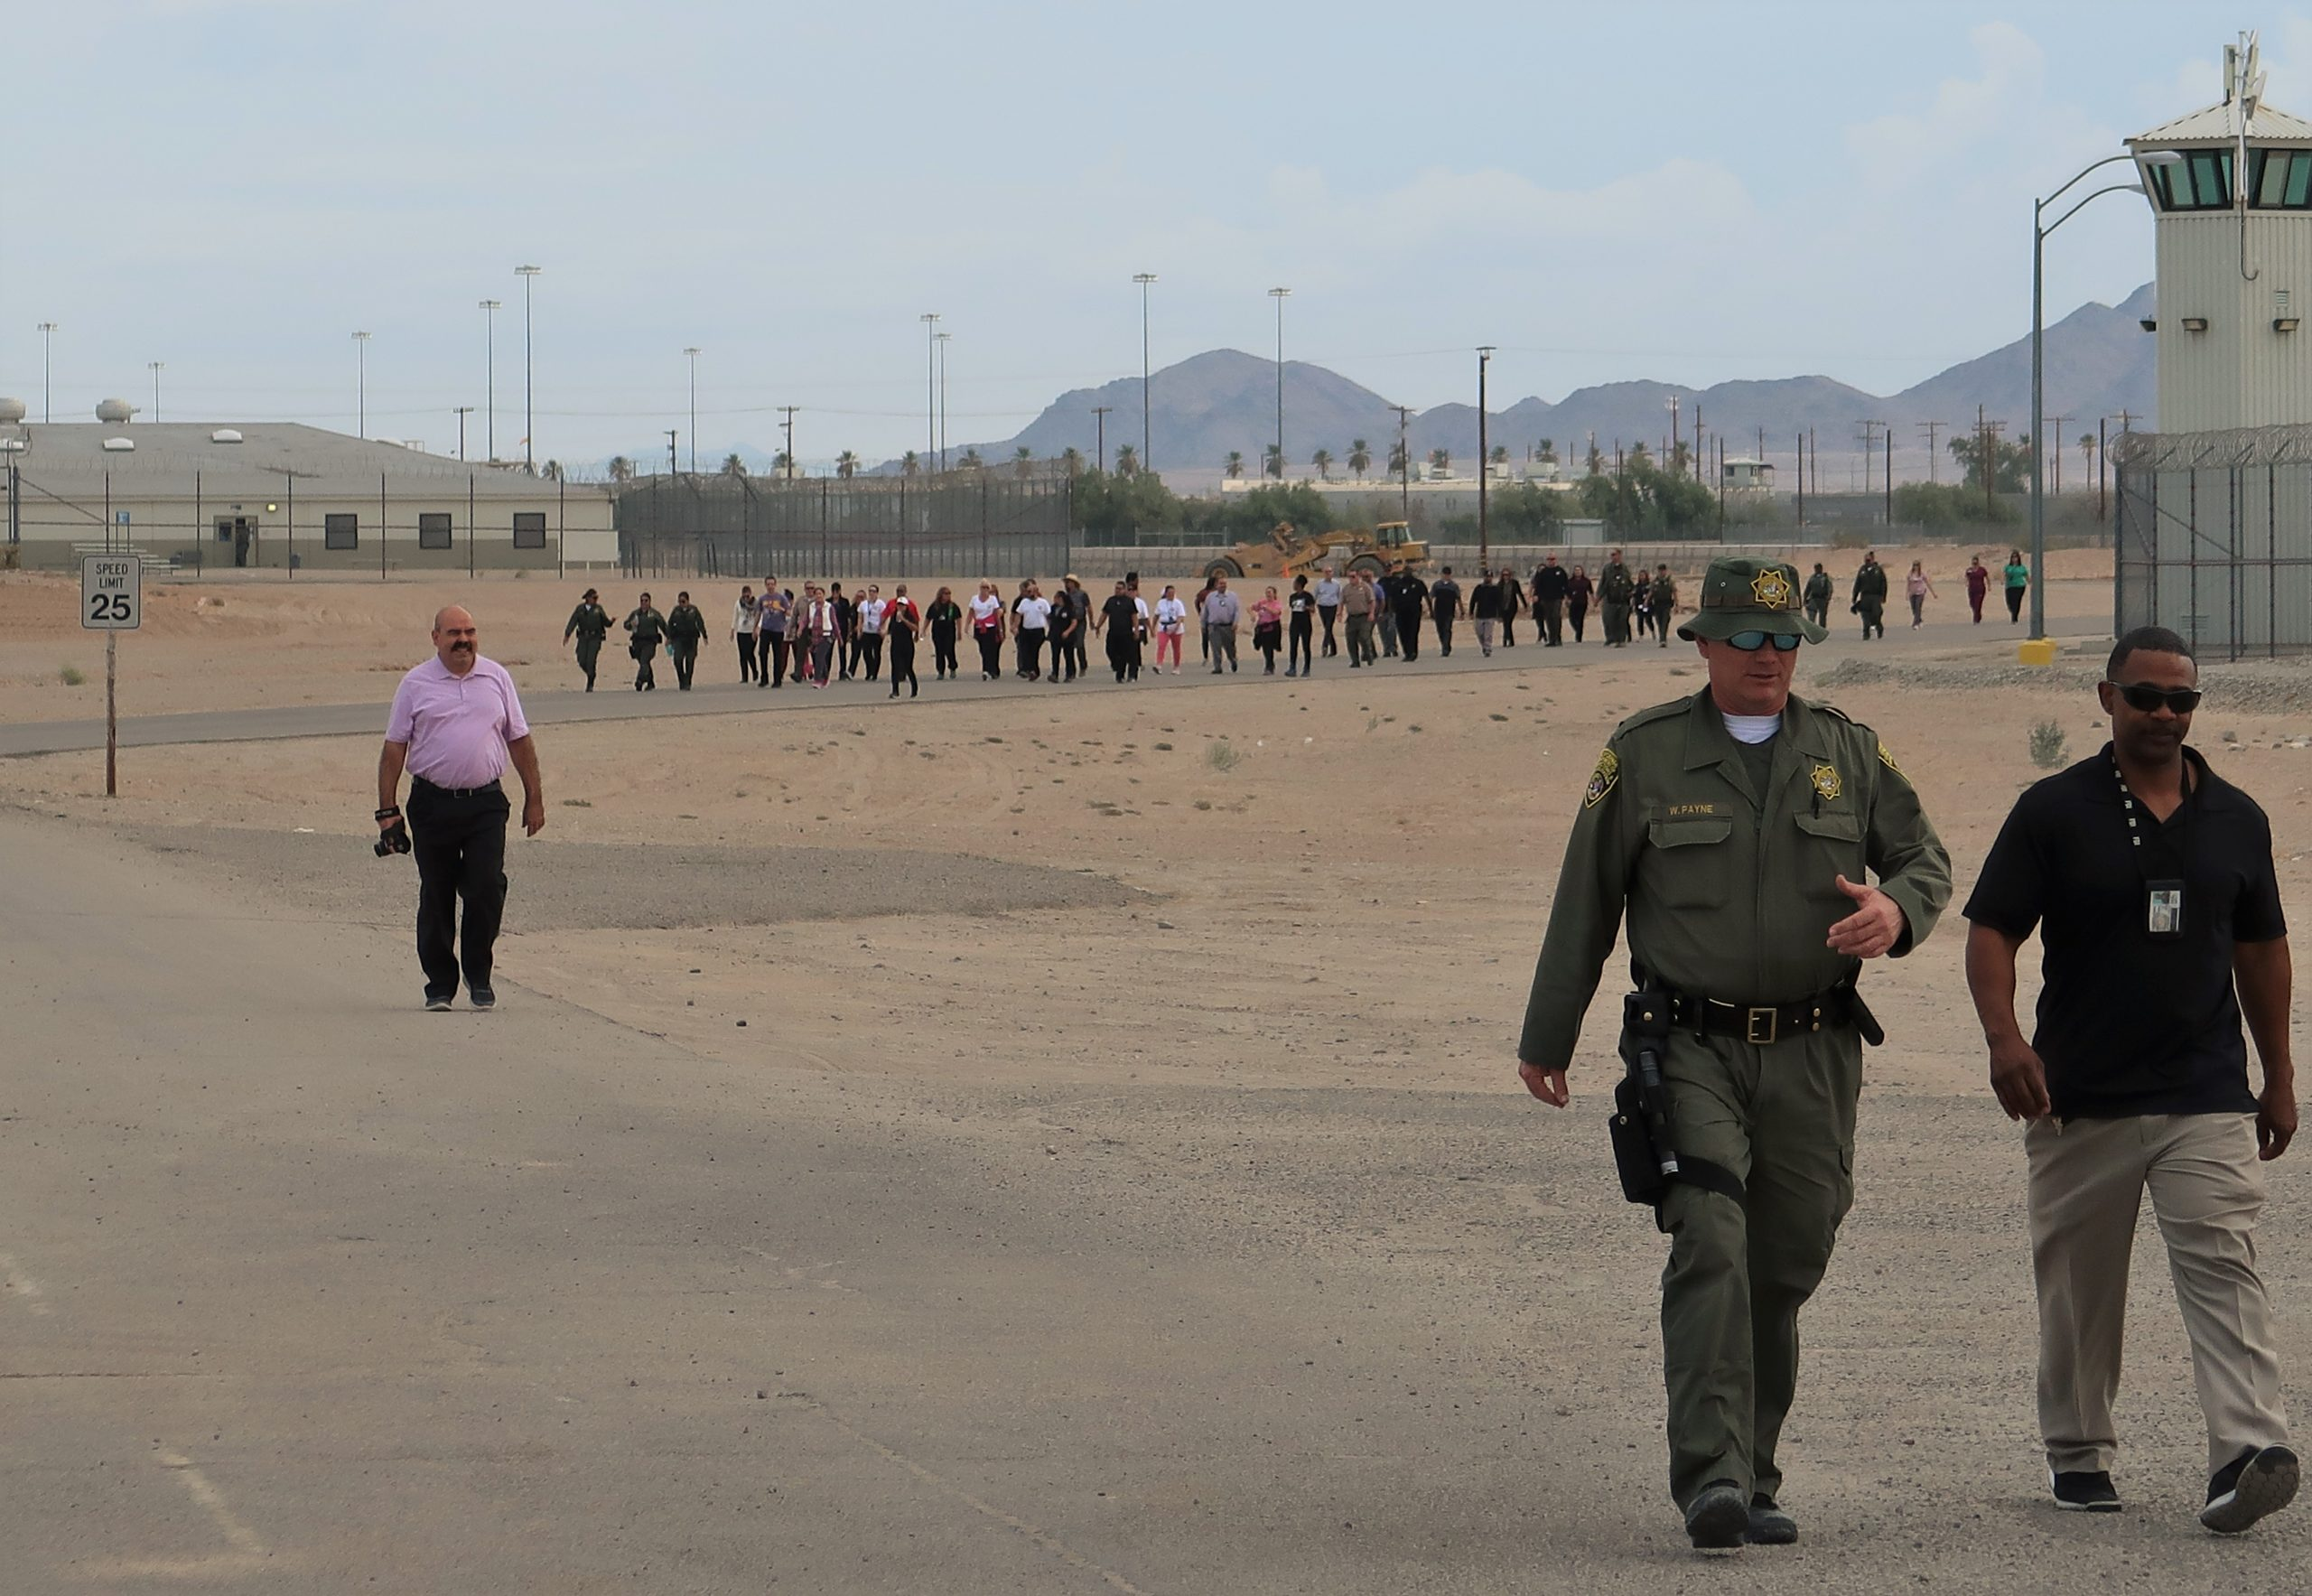 People walk on prison grounds.